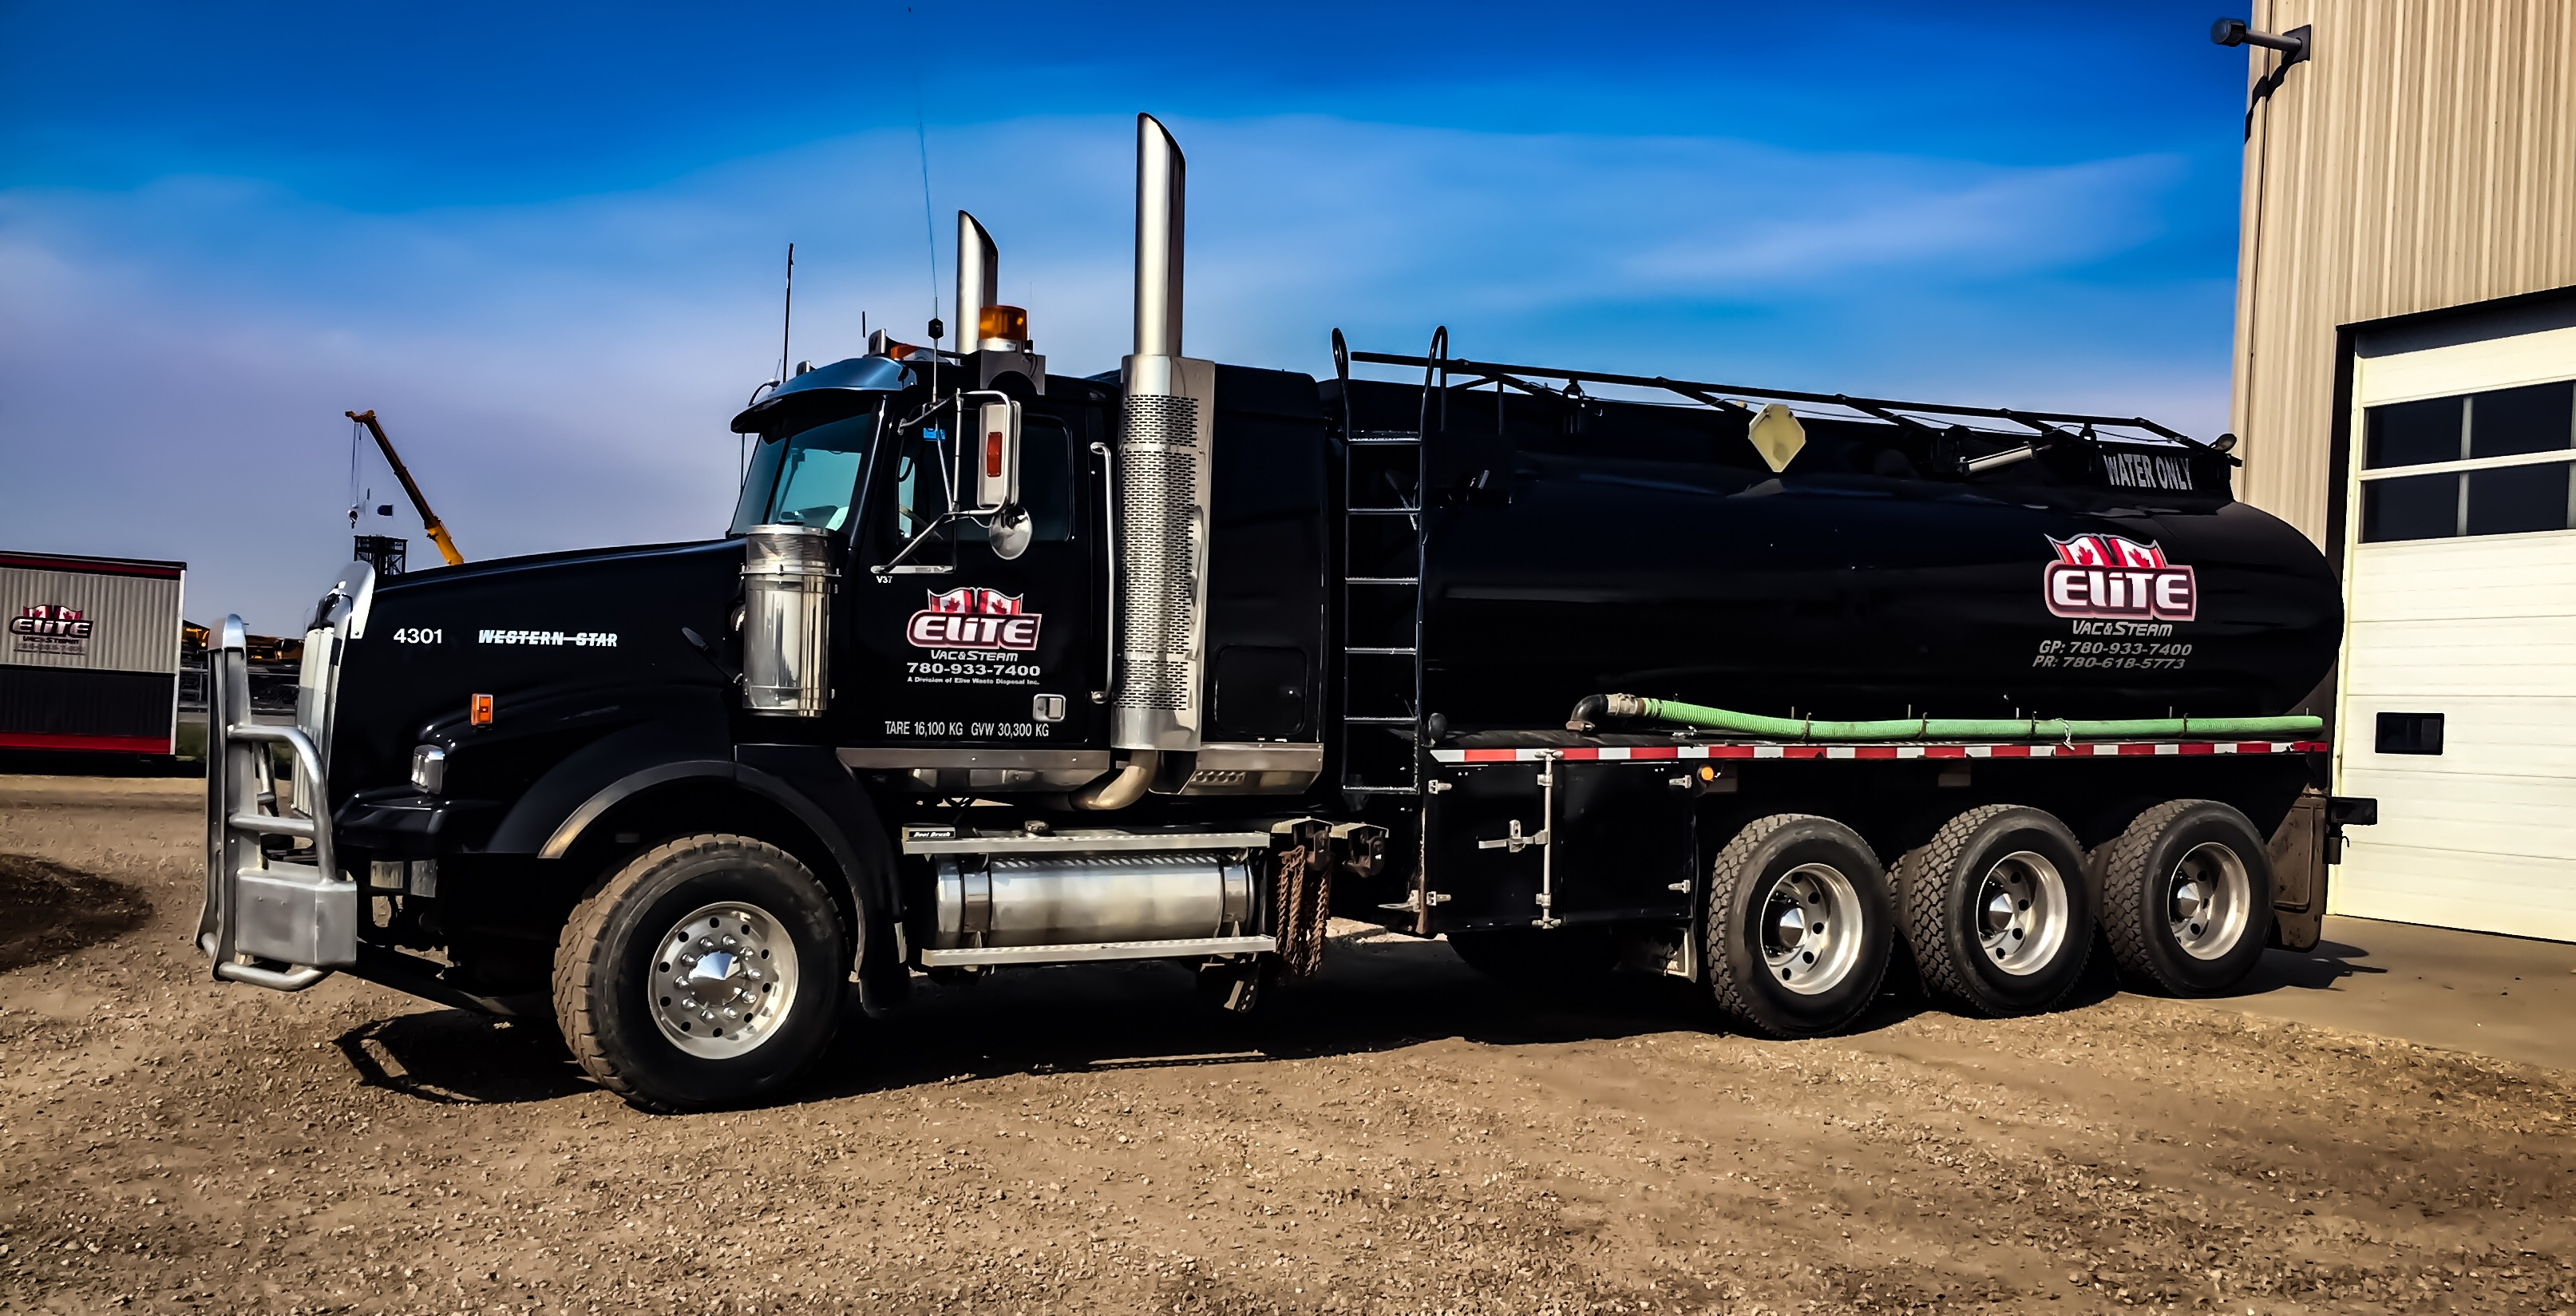 Elite Vac & Steam Tridem Water Truck 4301 Clairmont, AB